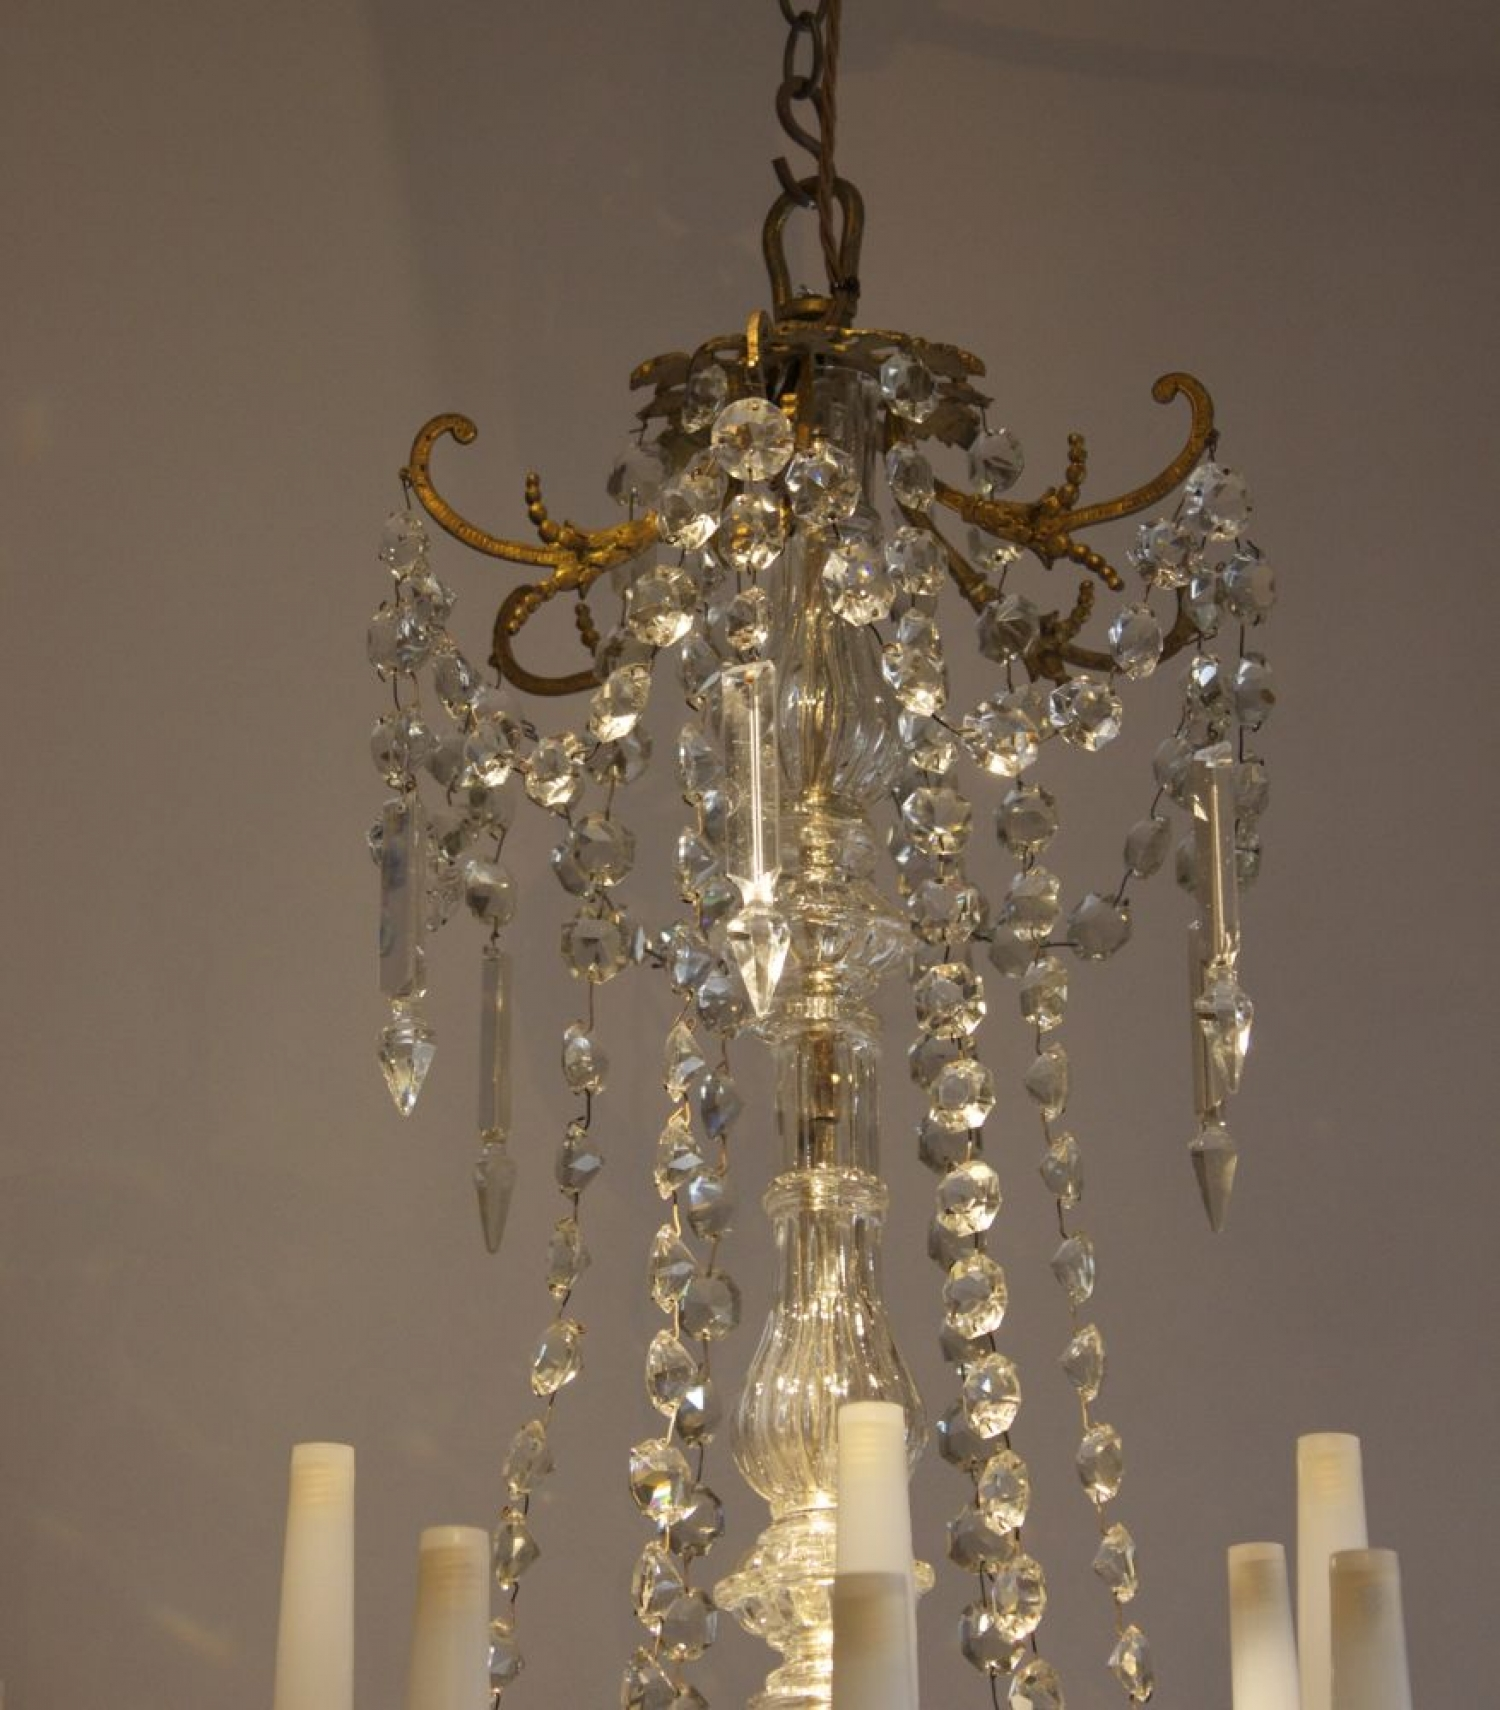 Antique Chandeliers New Seasons Stock Norfolk